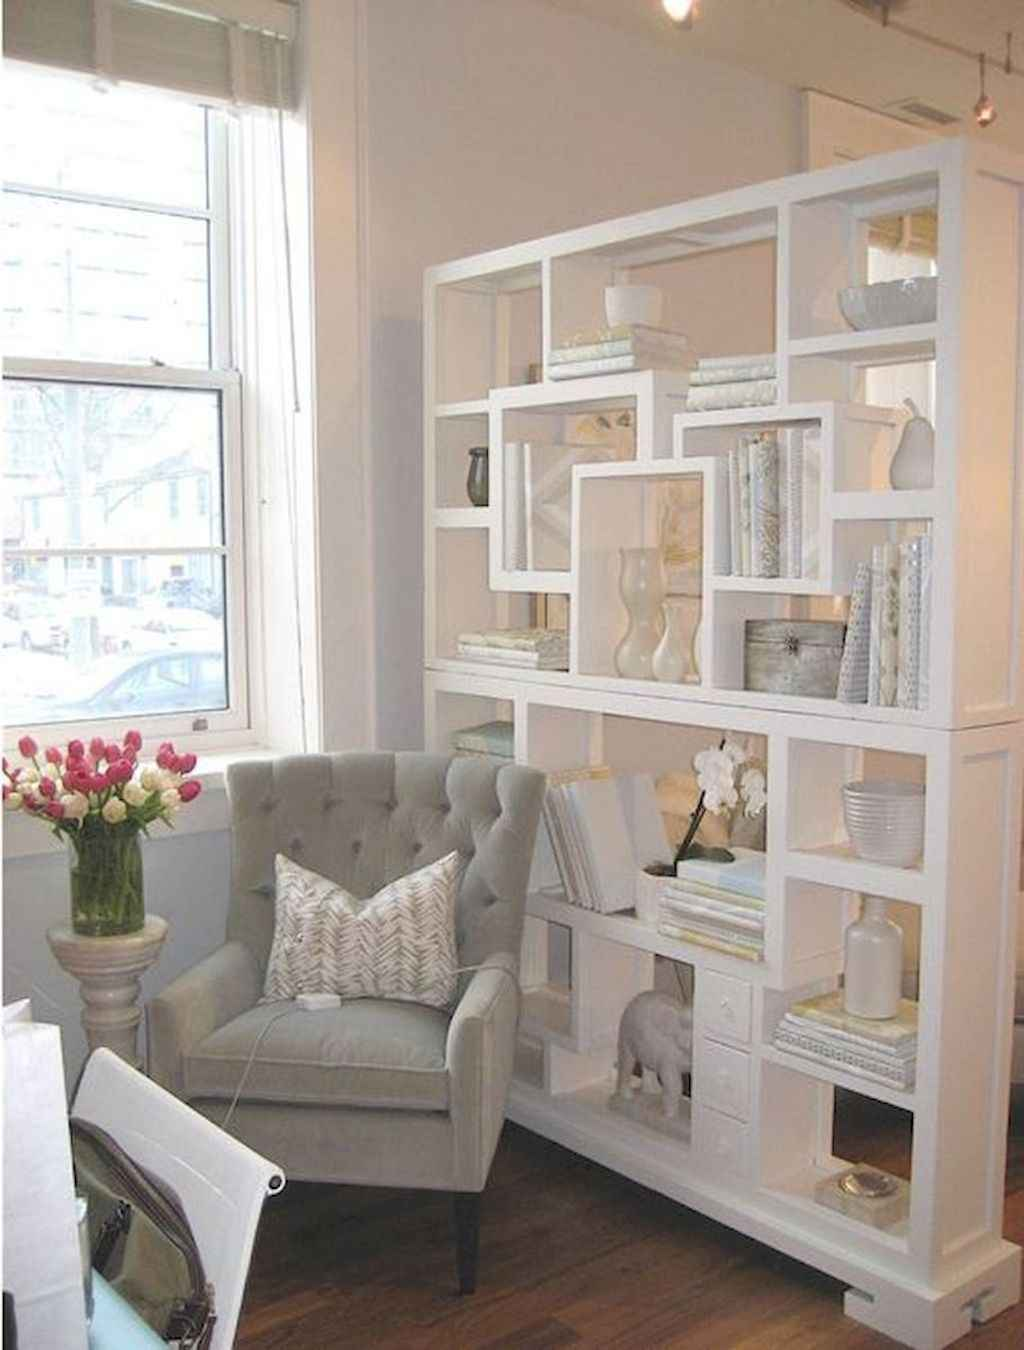 Cozy apartment decorating ideas on a budget (7)